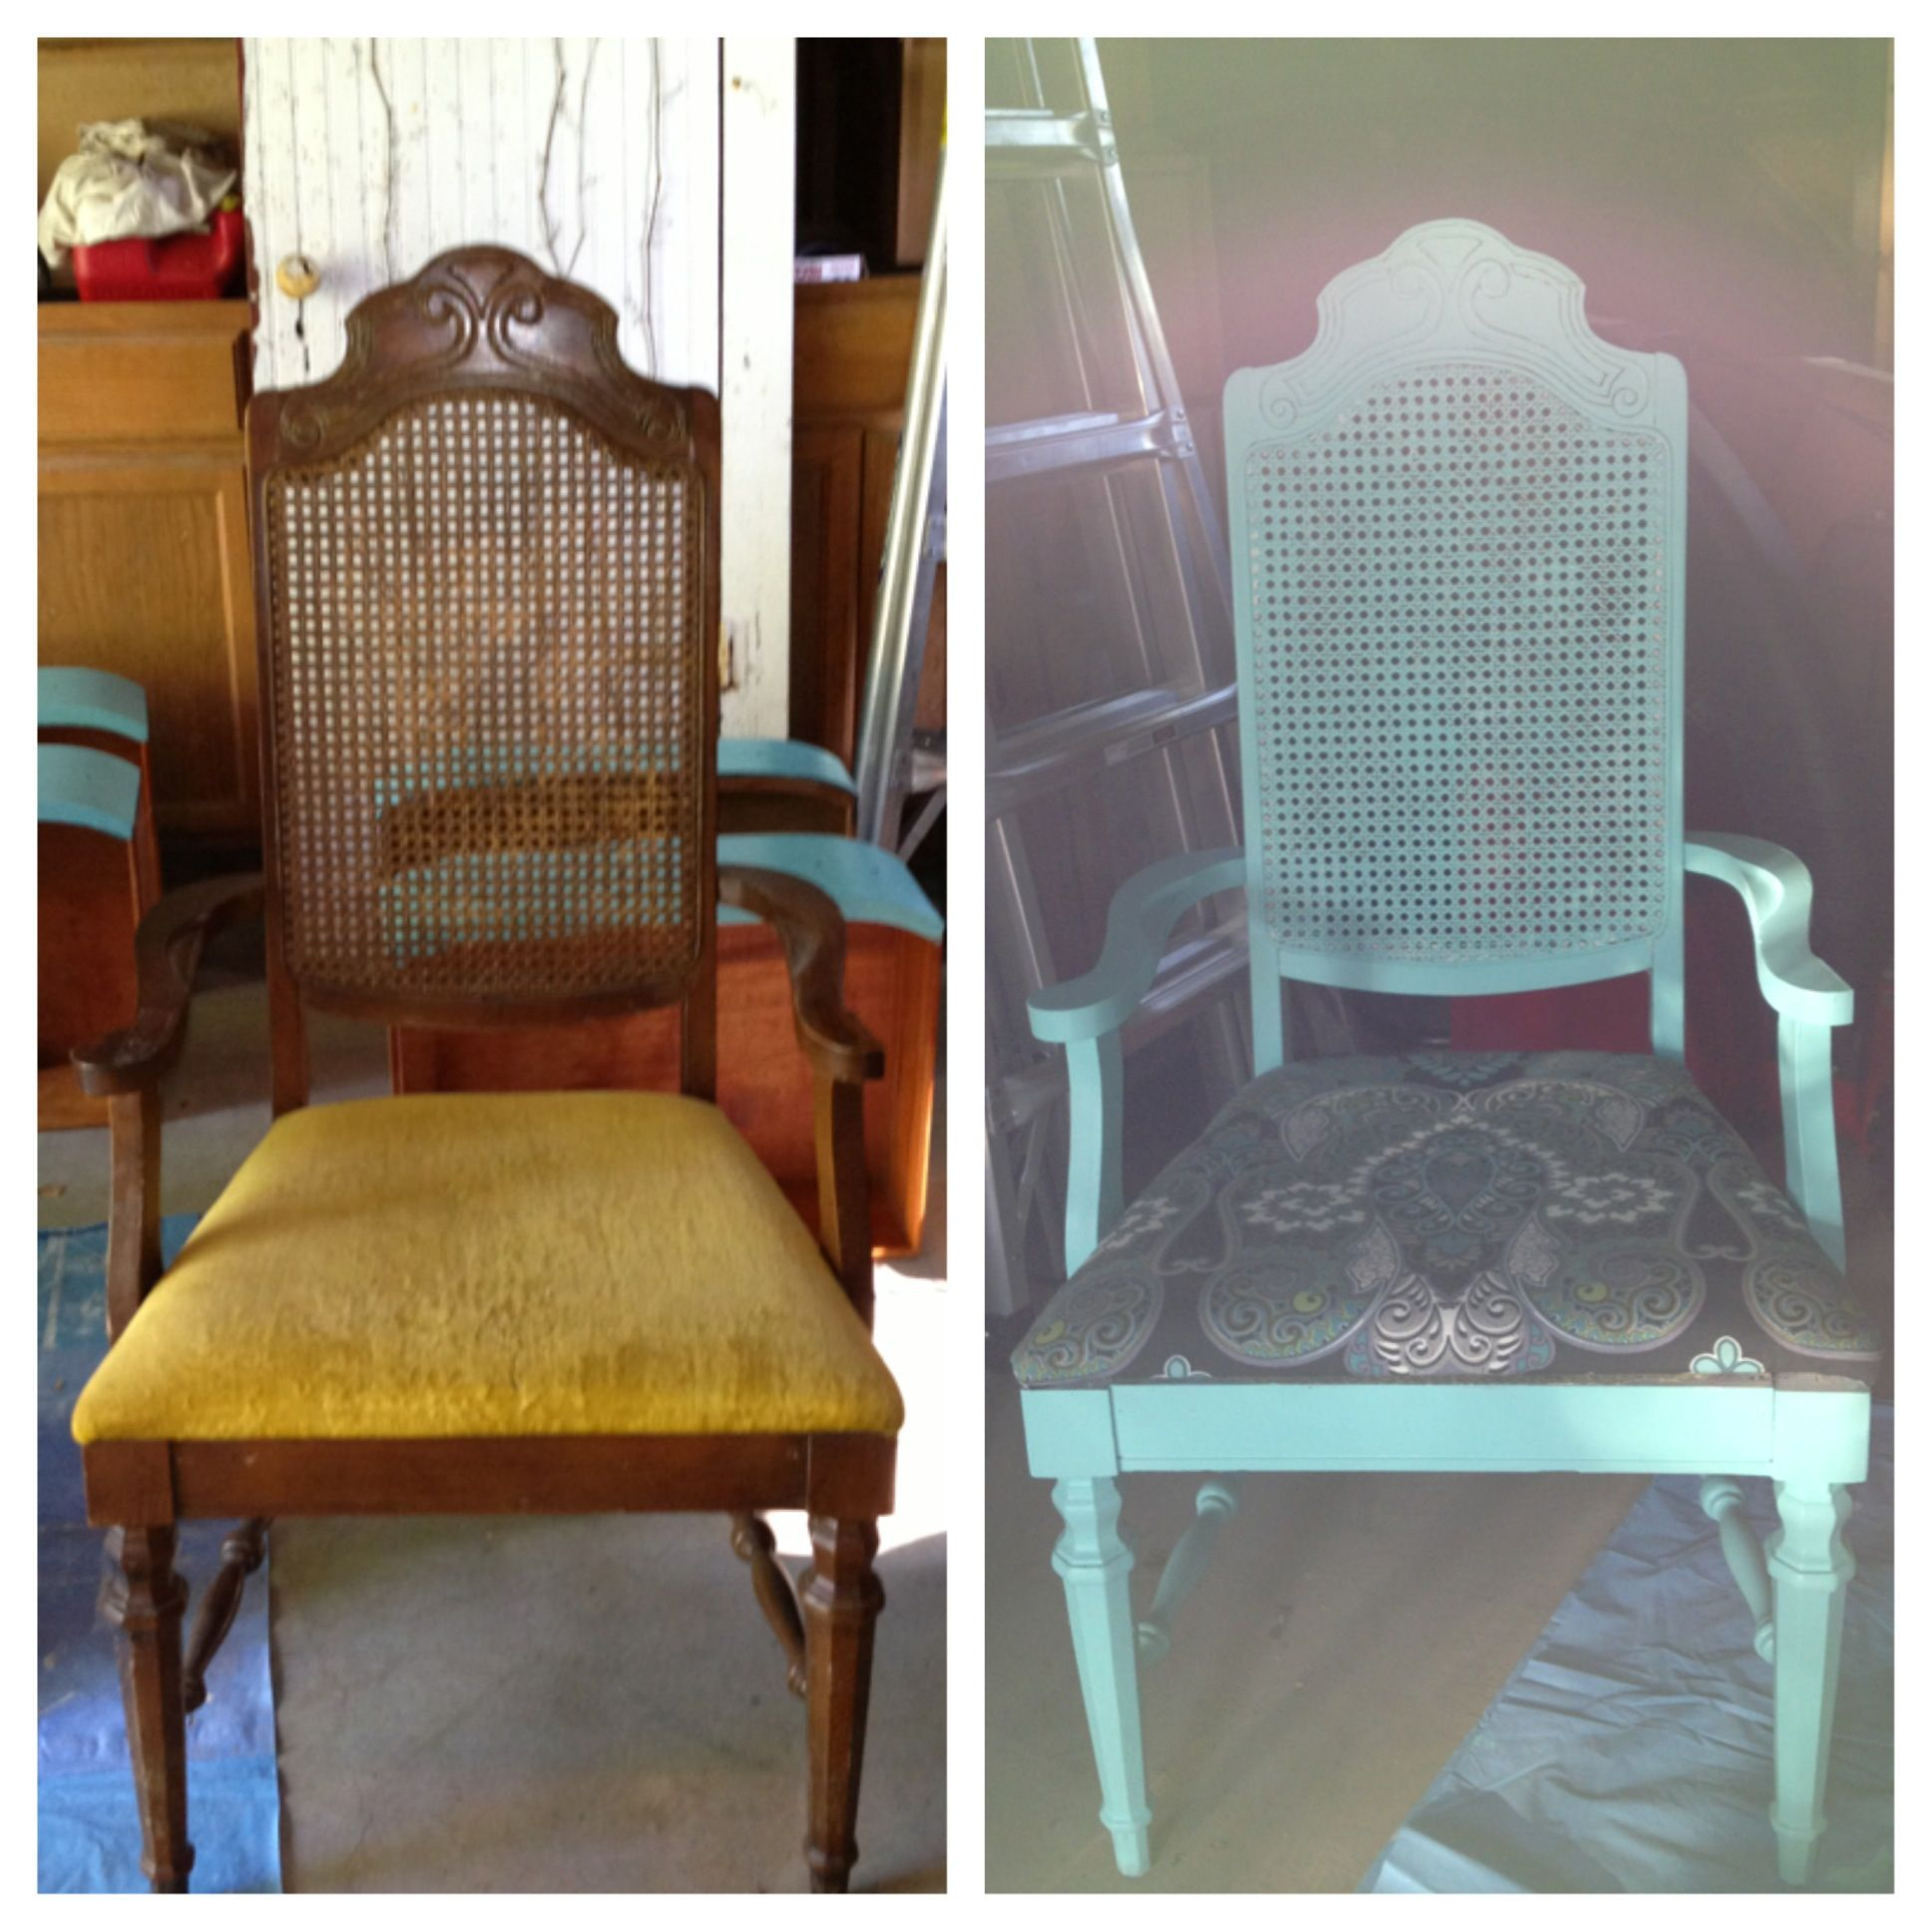 Upcycled Craigslist chairs! | Furniture, Home decor ...